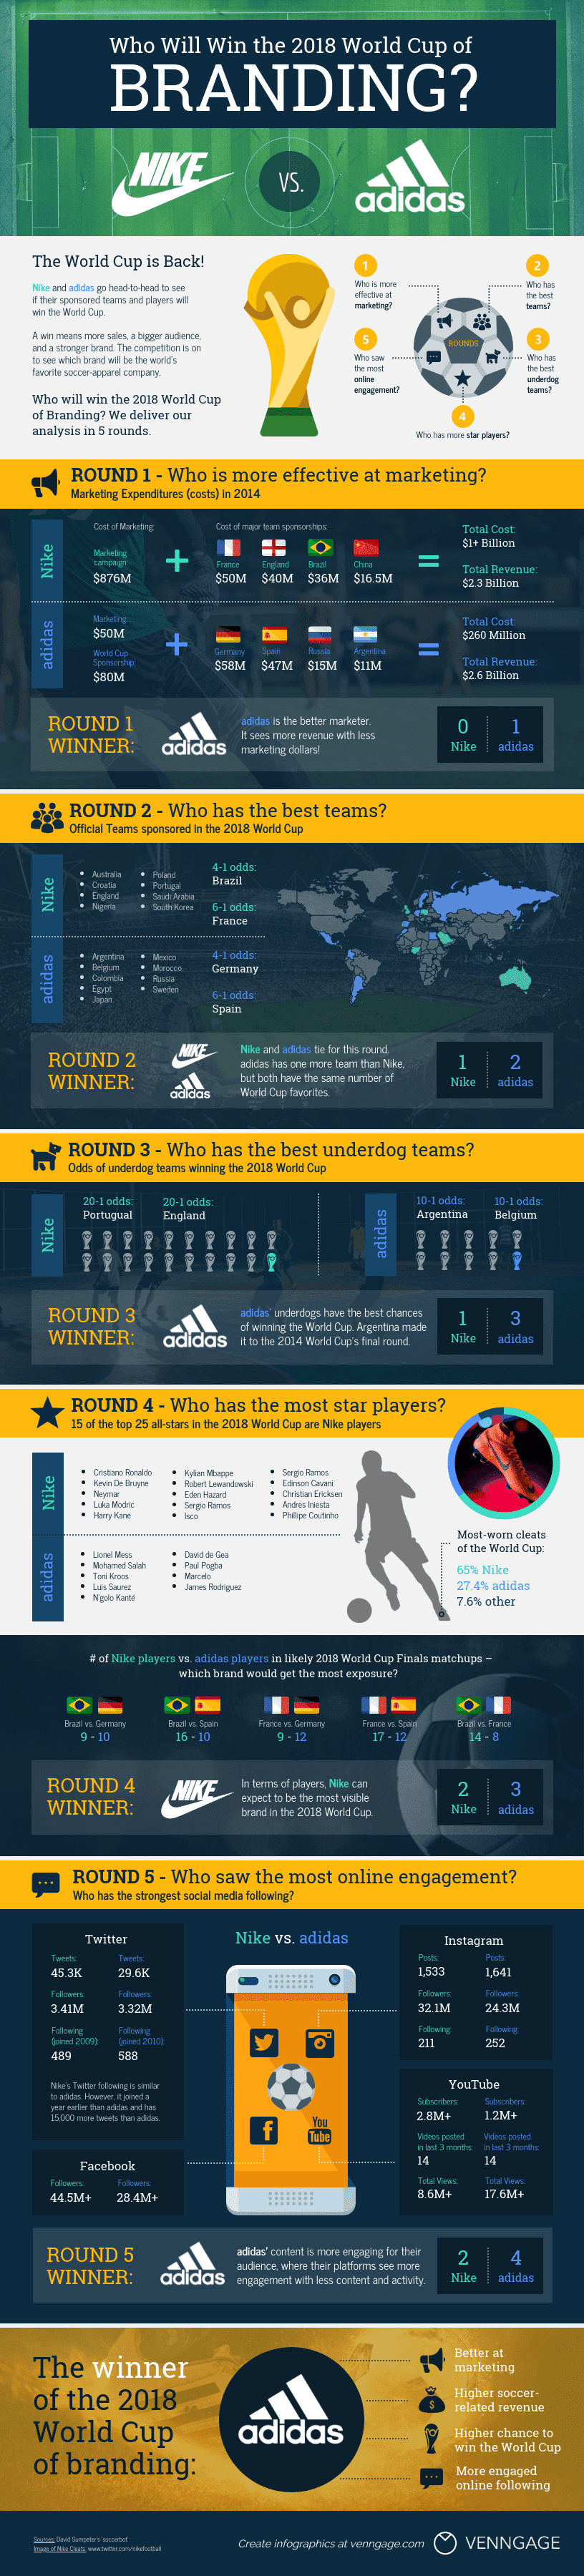 HI-FI World Cup infographic